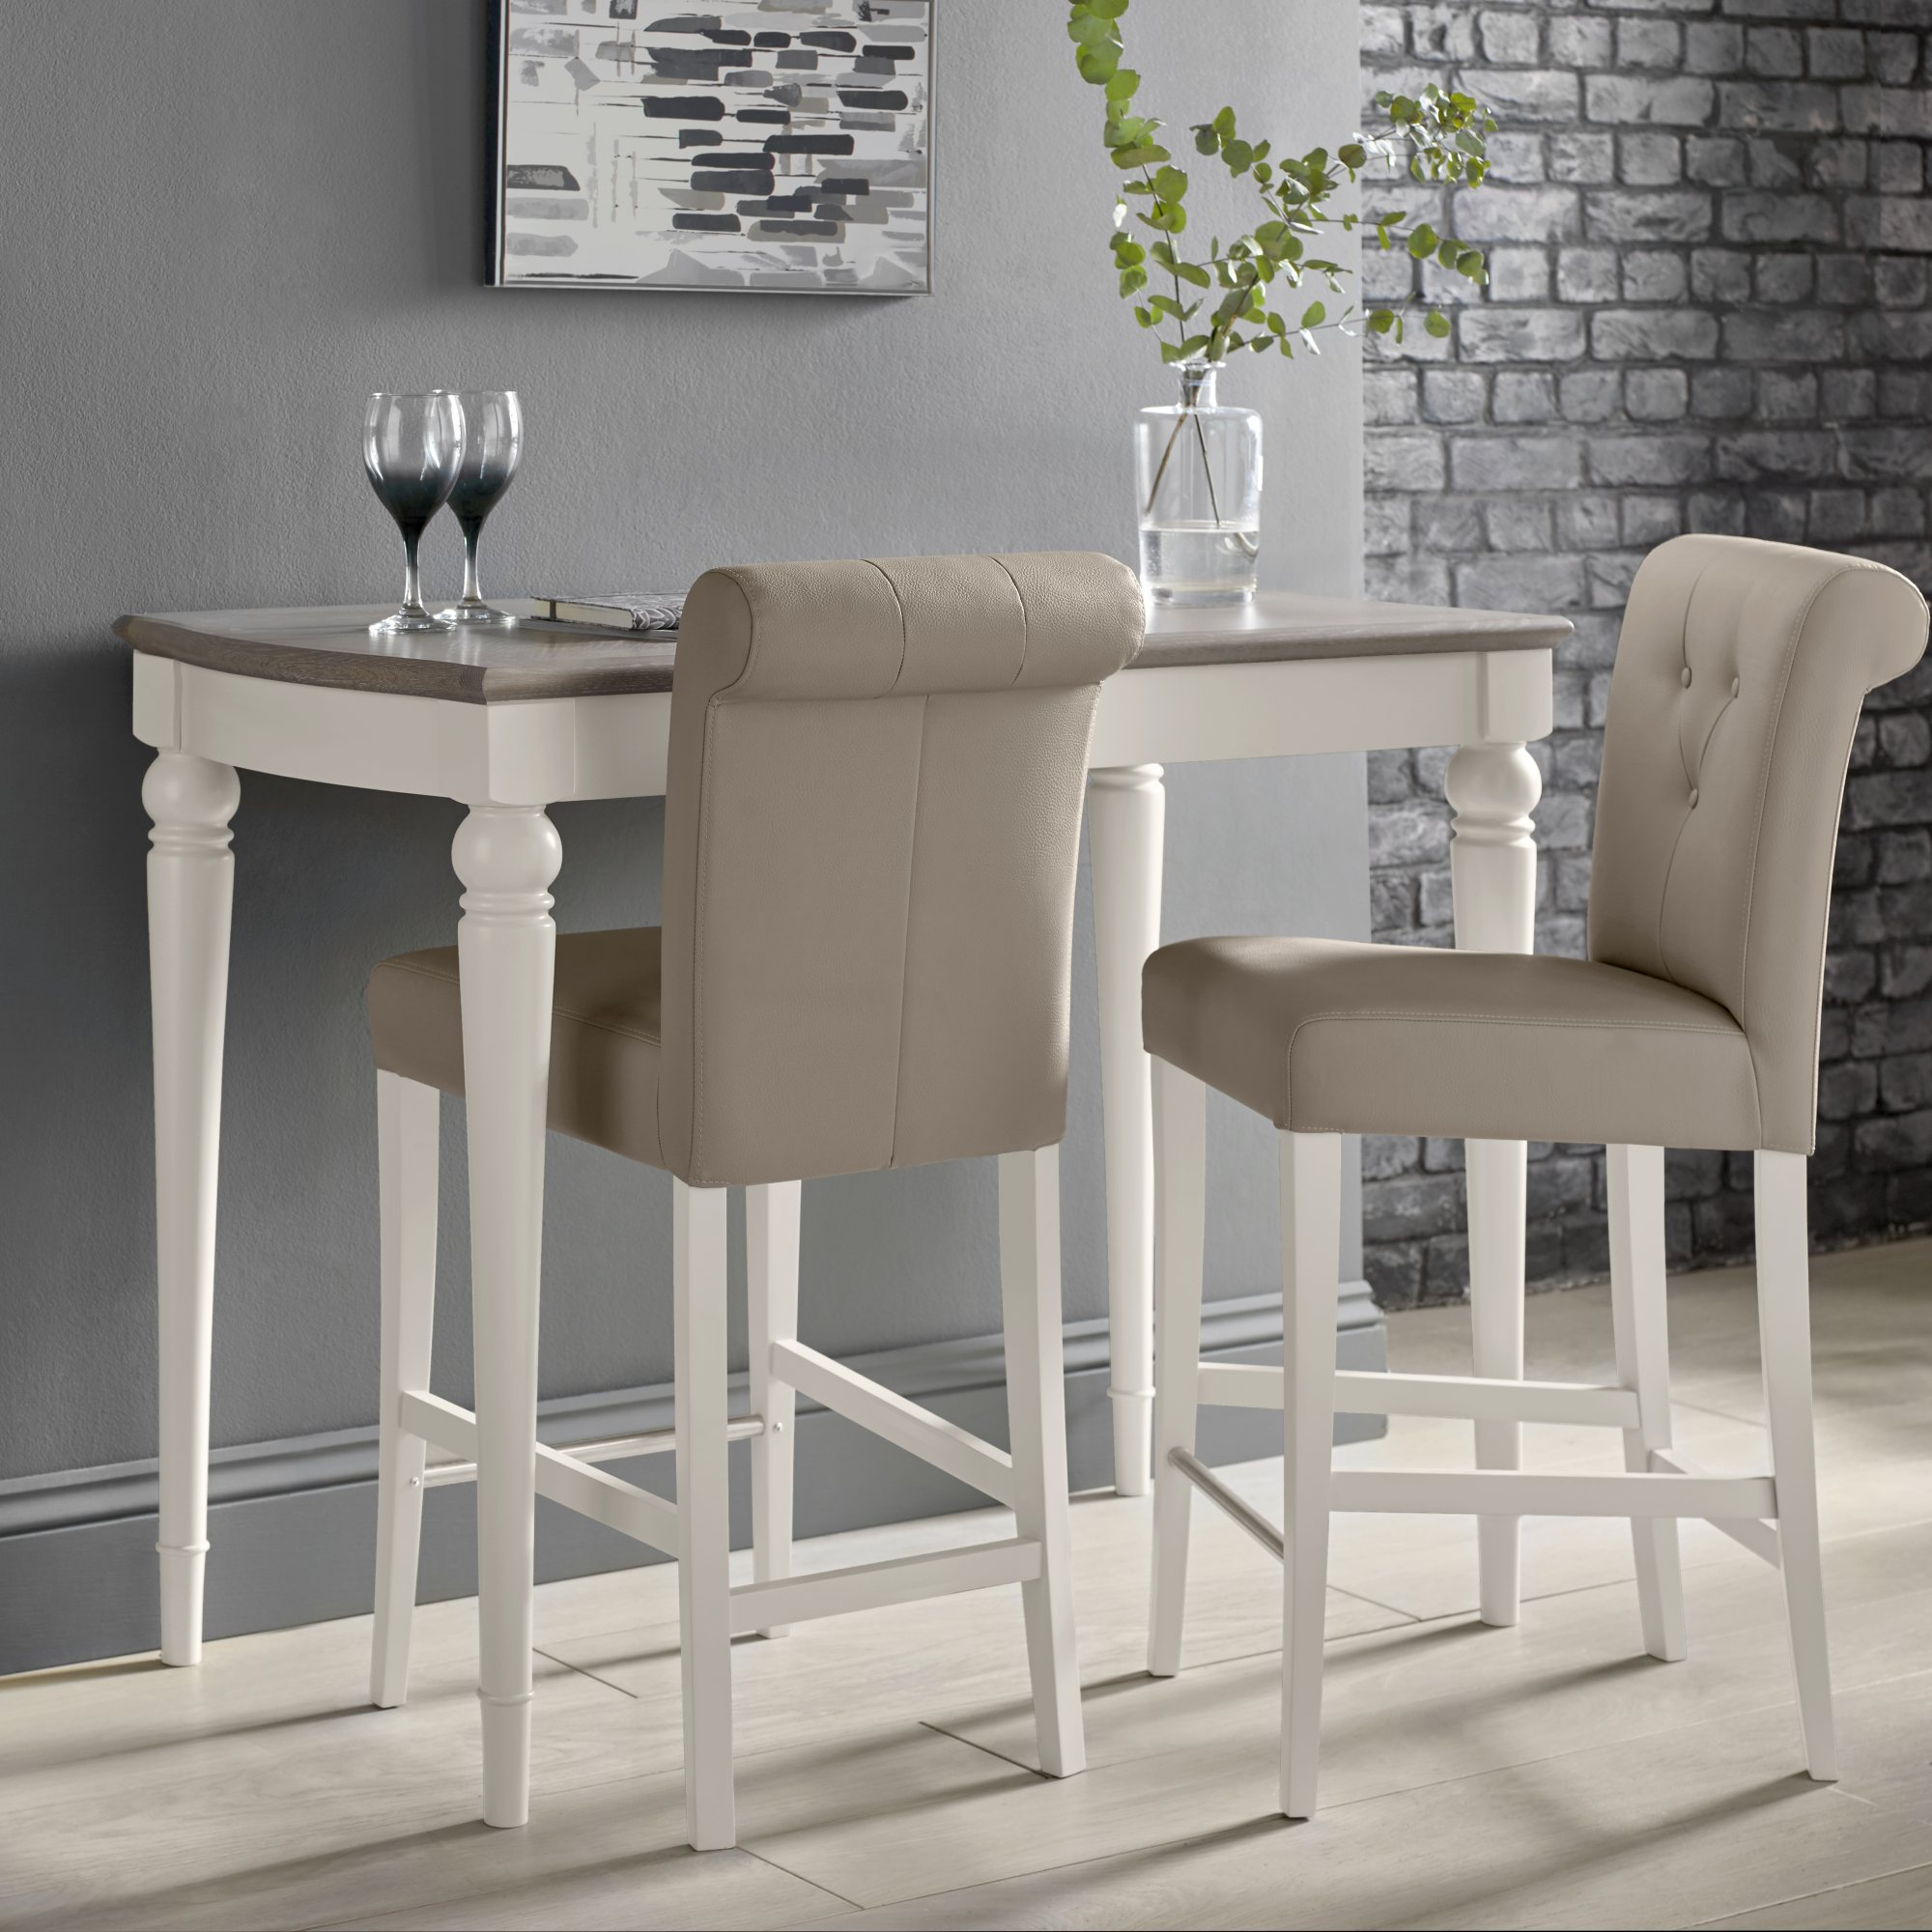 MONICA UPH BAR STOOL